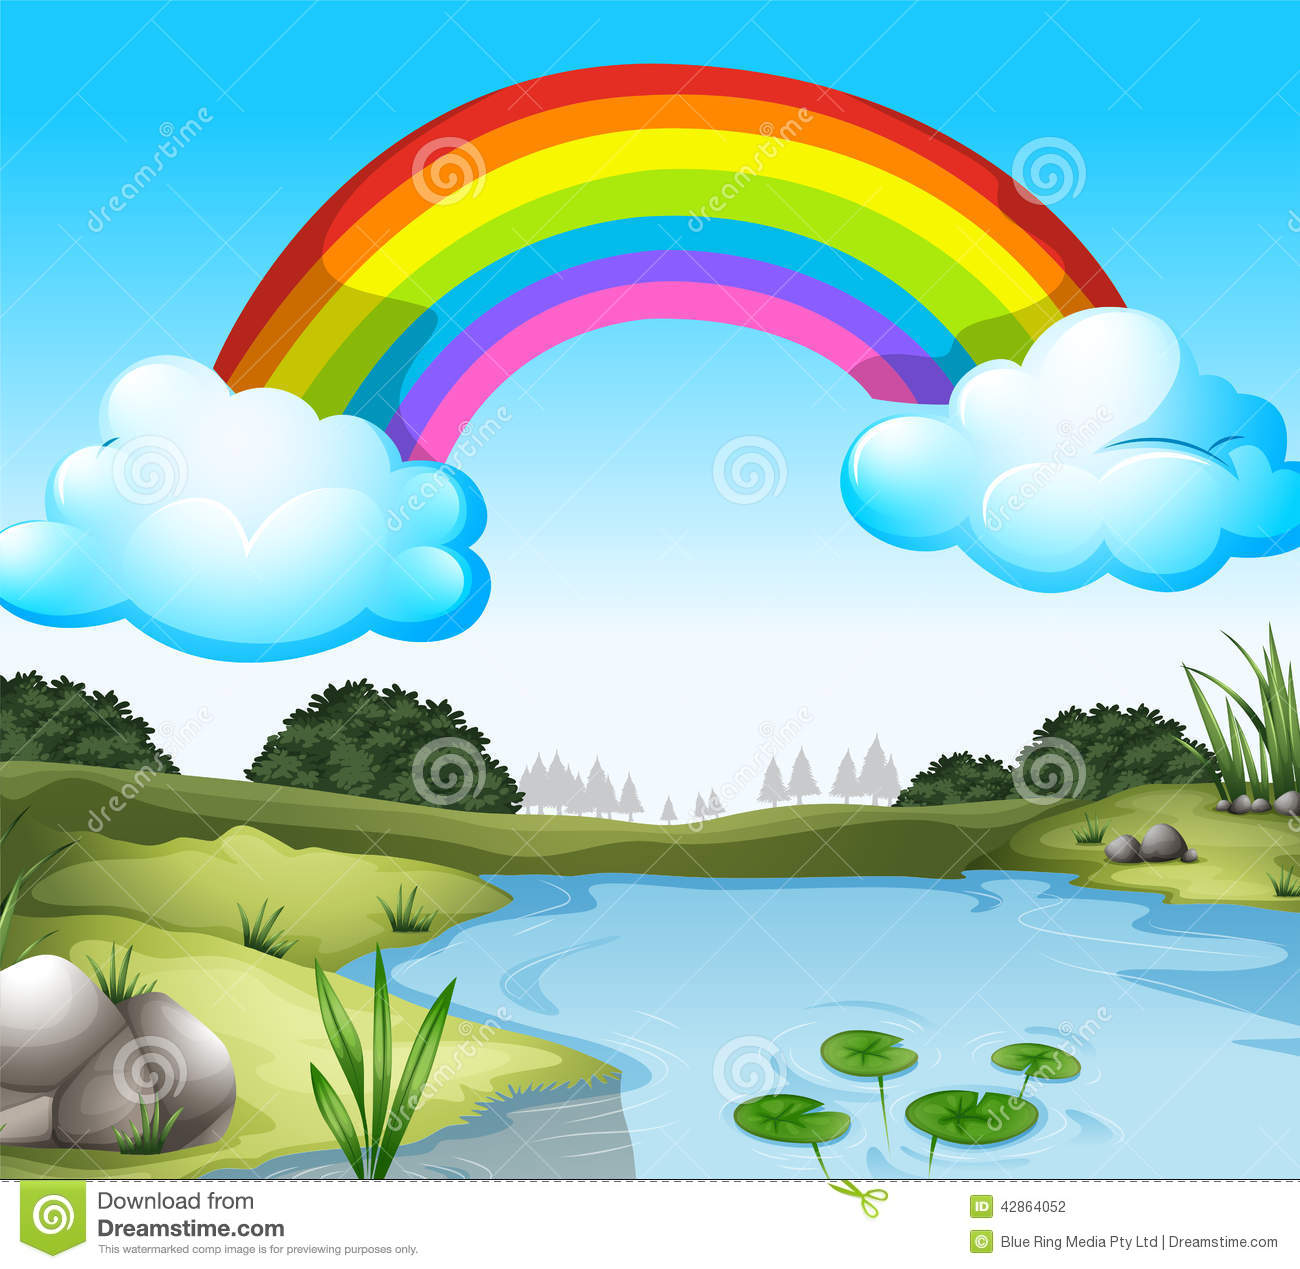 a beautiful scenery with a rainbow in the sky stock vector